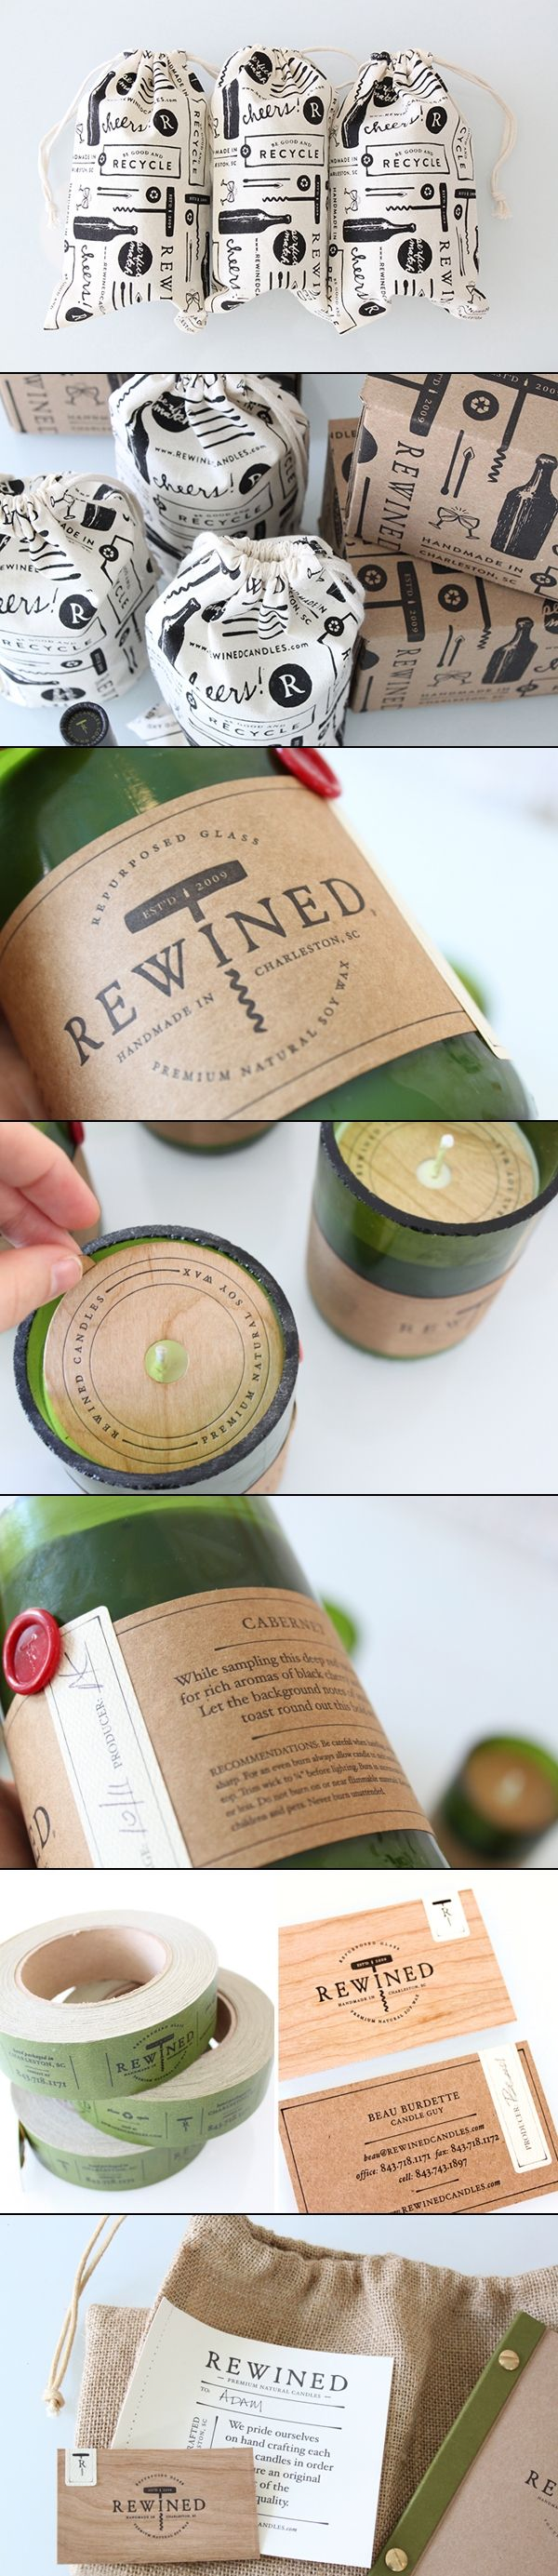 Packaging and Branding: Rewined Candles by Stitch